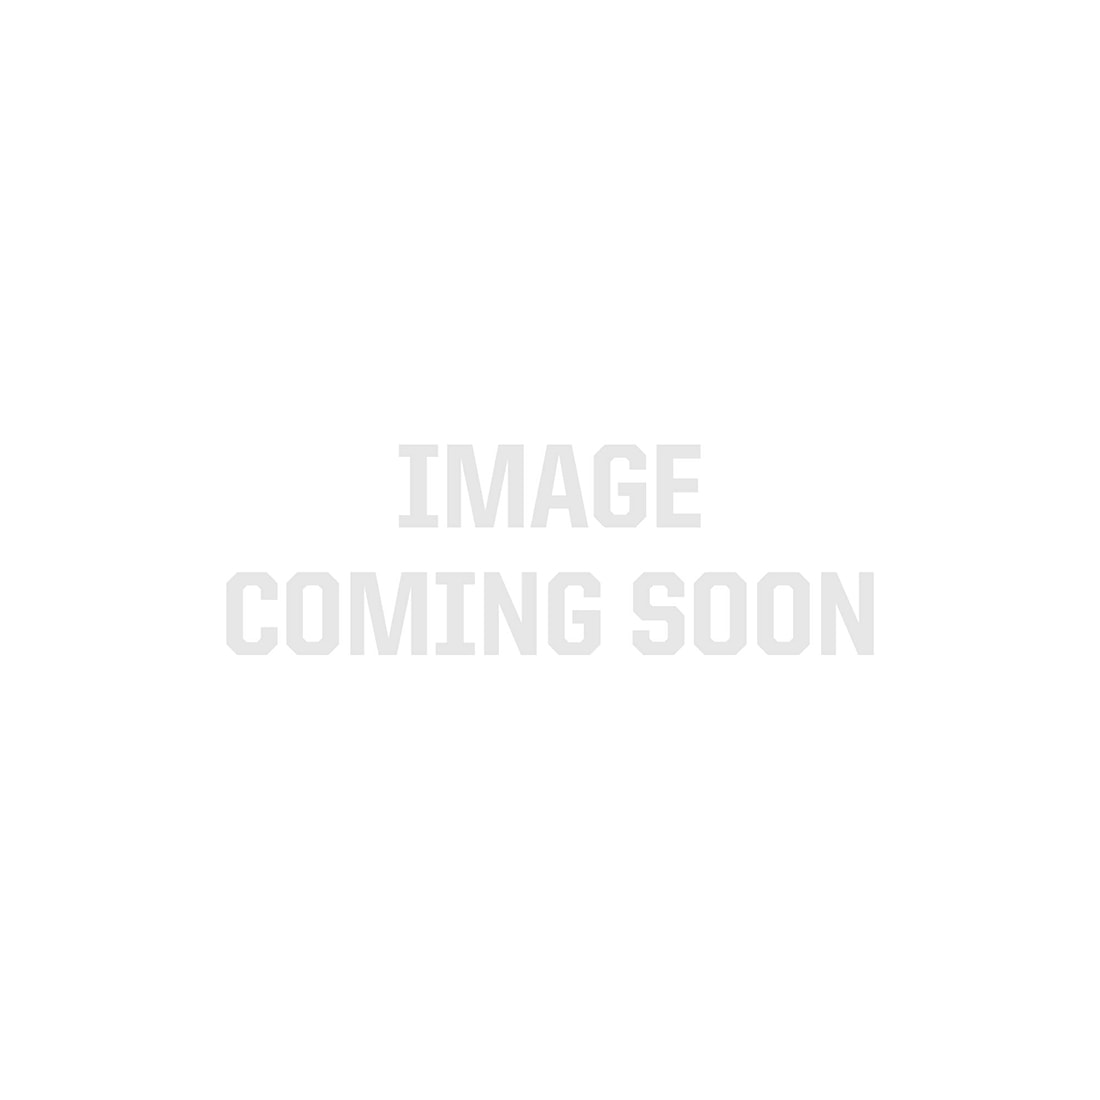 Lutron PJN-3BRL-GWH-L01 Pico wireless control with Night Light, 3-button with Raise/Lower